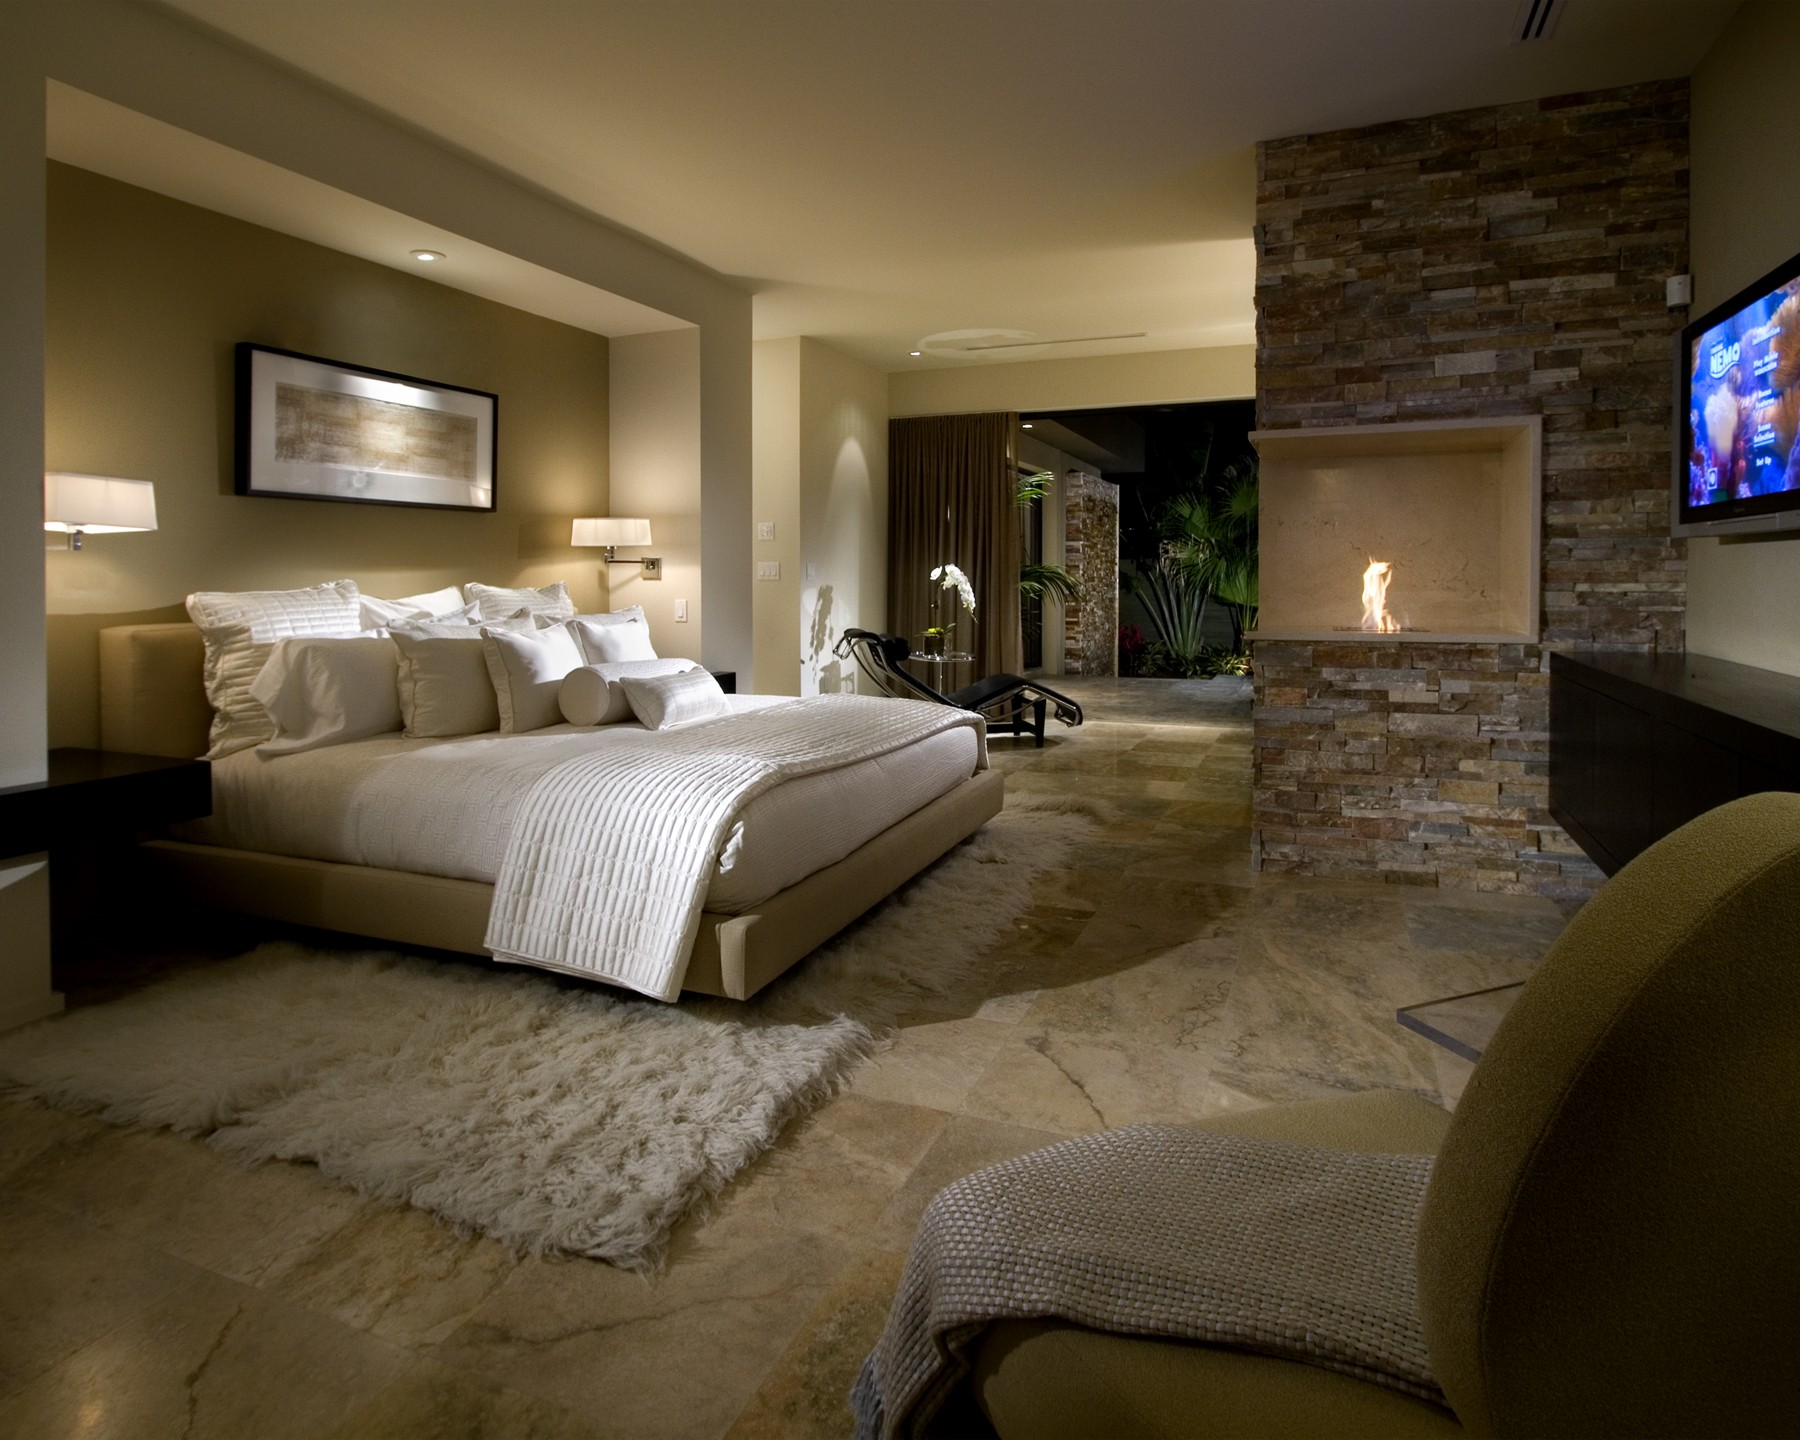 Modern Master Bedroom 6 Bedrooms With Fireplaces We Would Love To Wake Up To